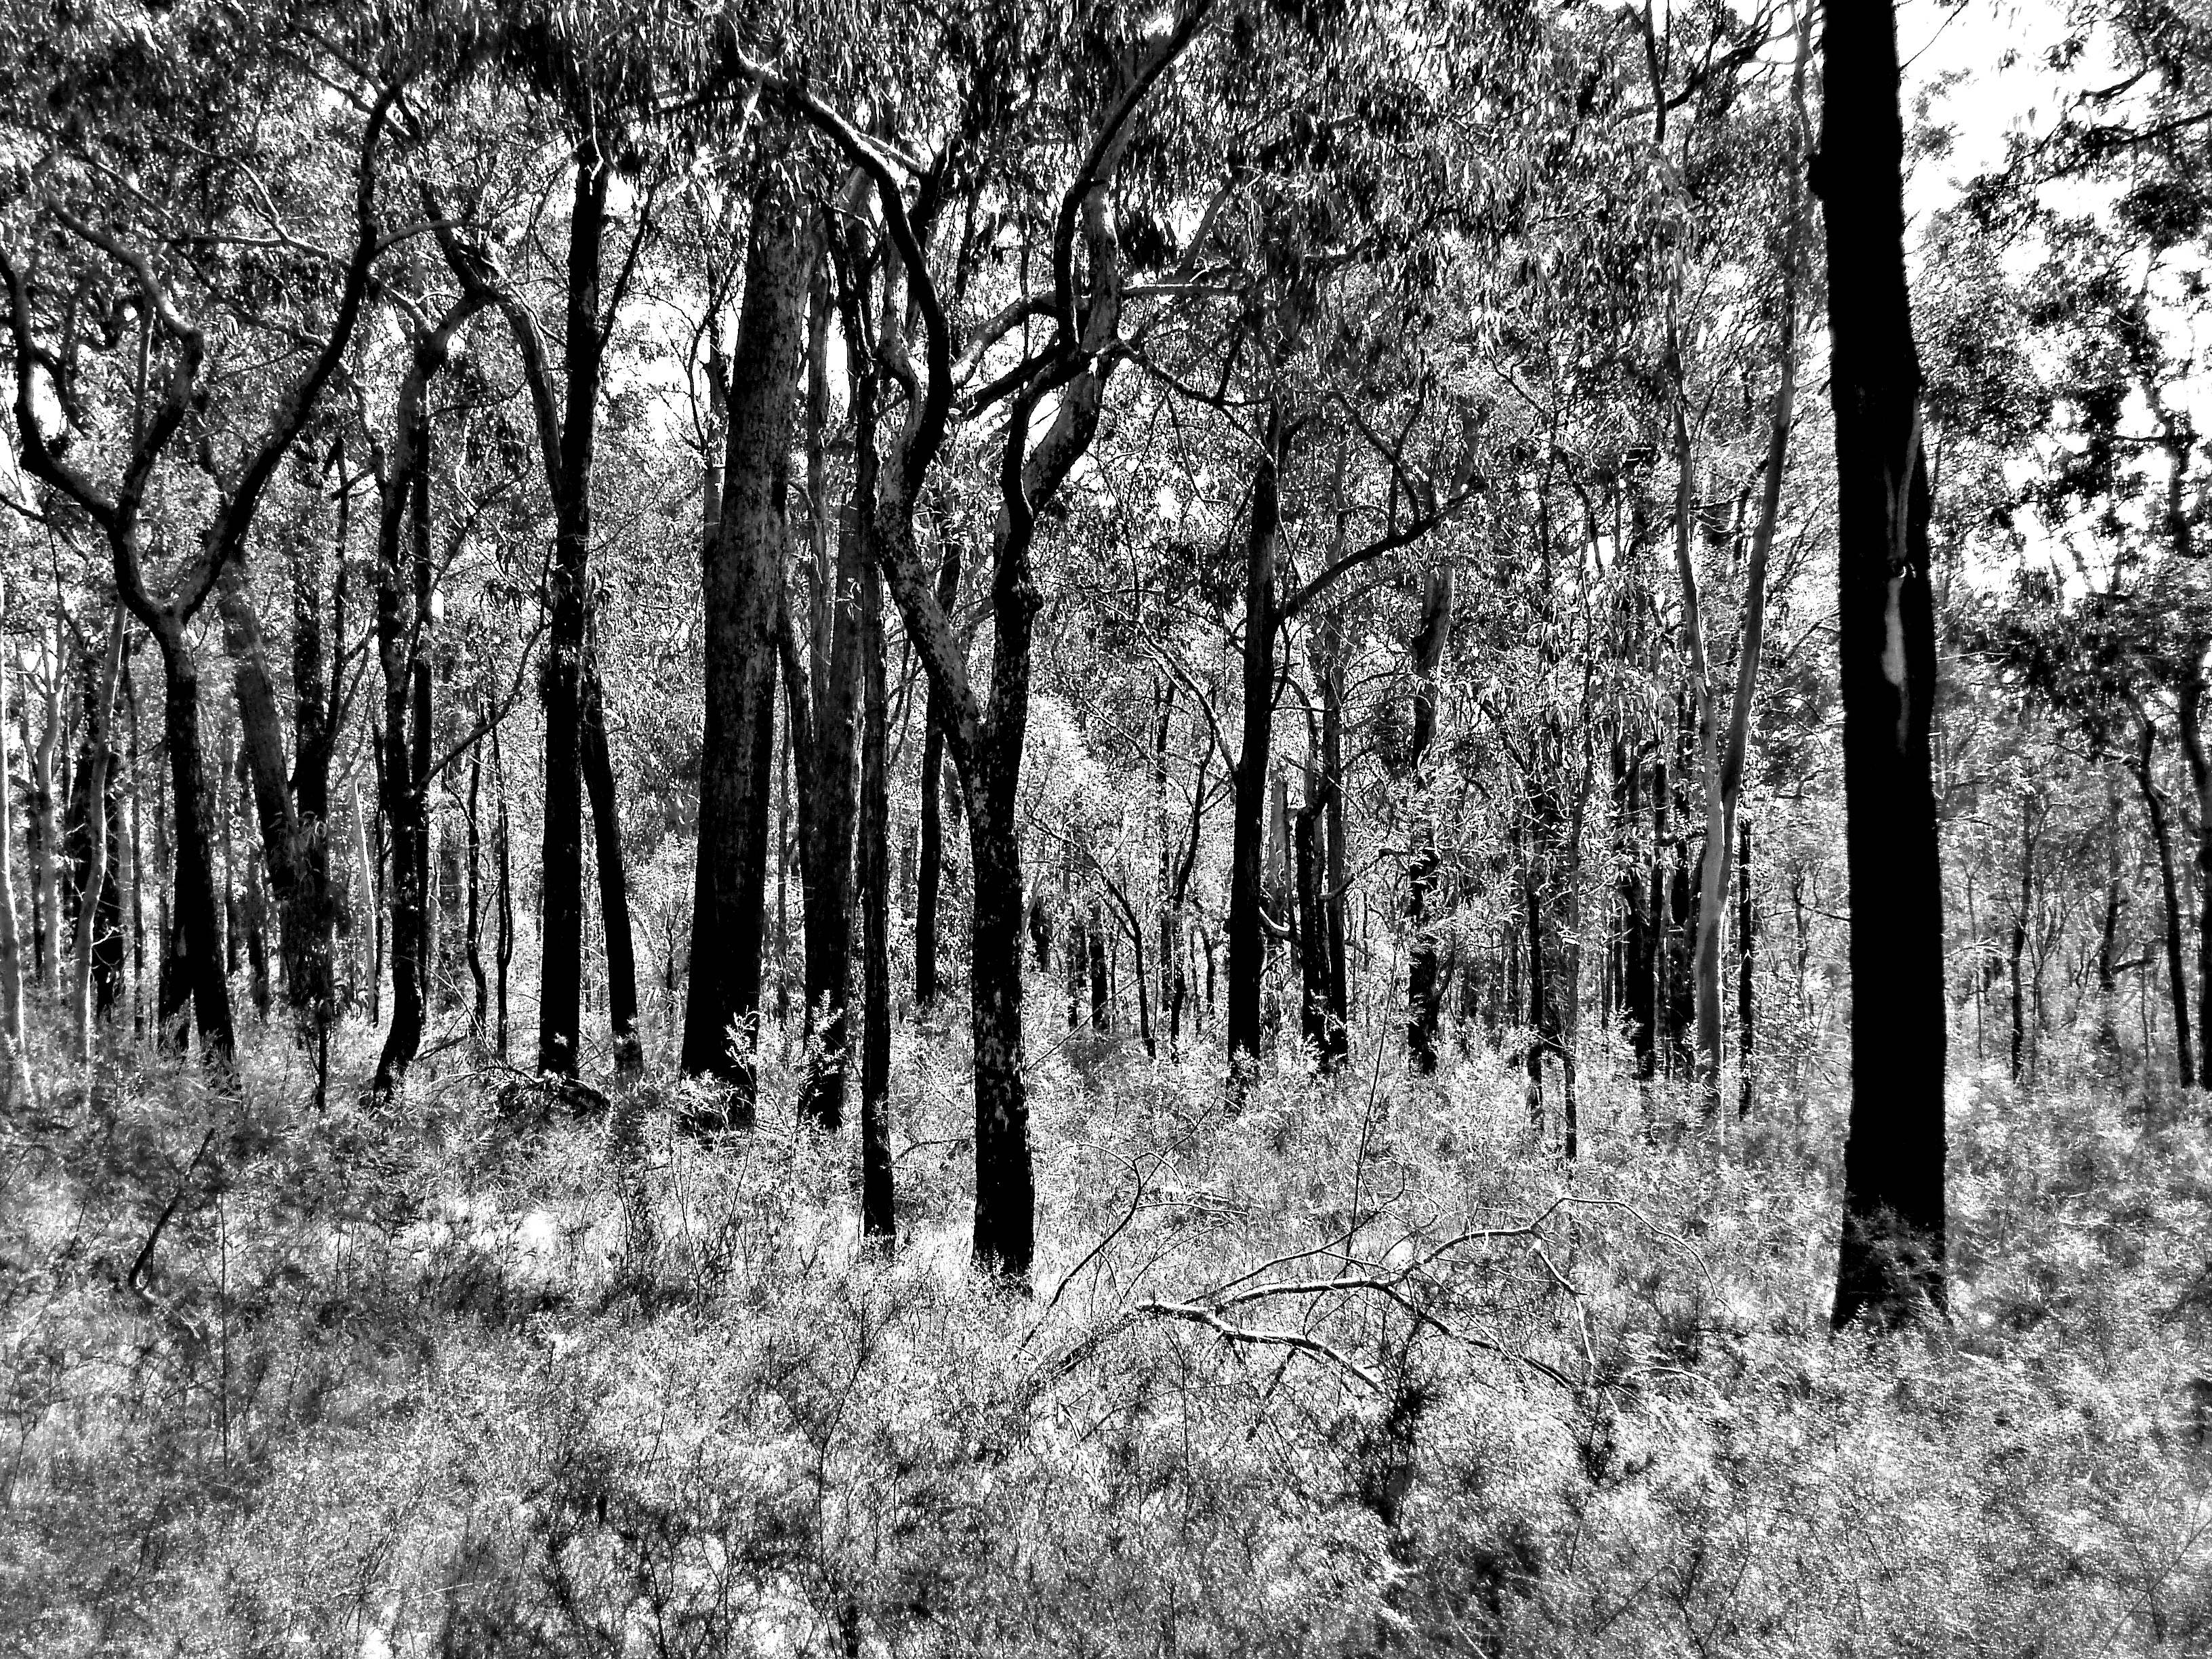 black and white high contrast image of australian trees